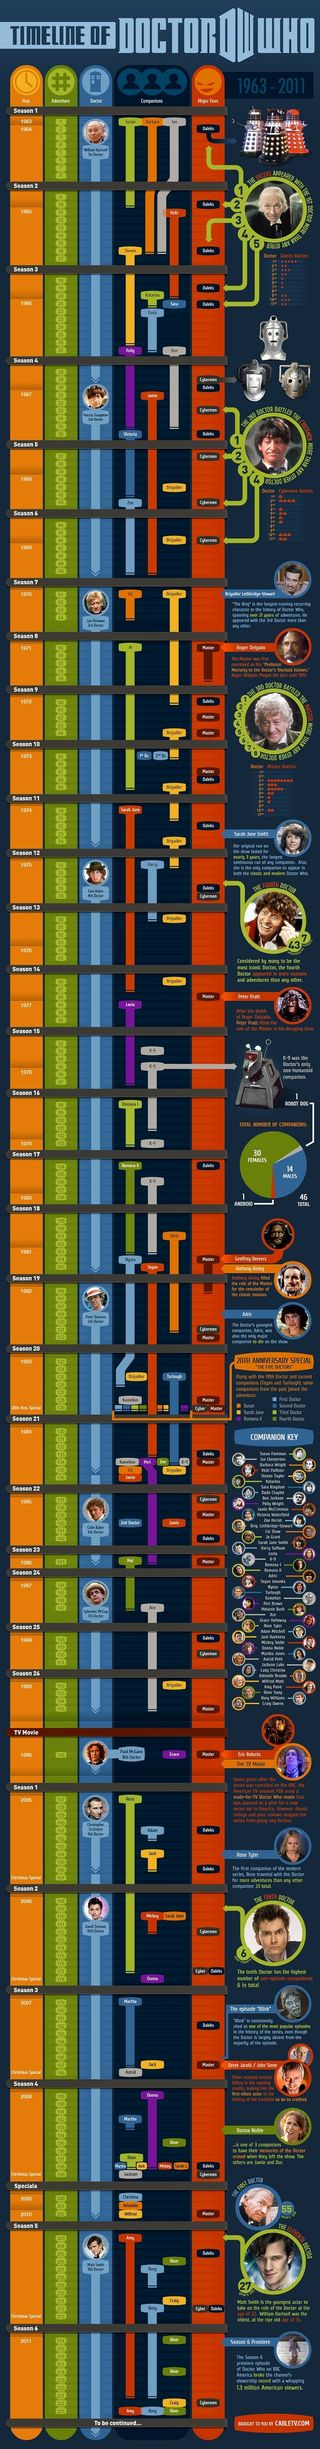 Drwhoinfographic